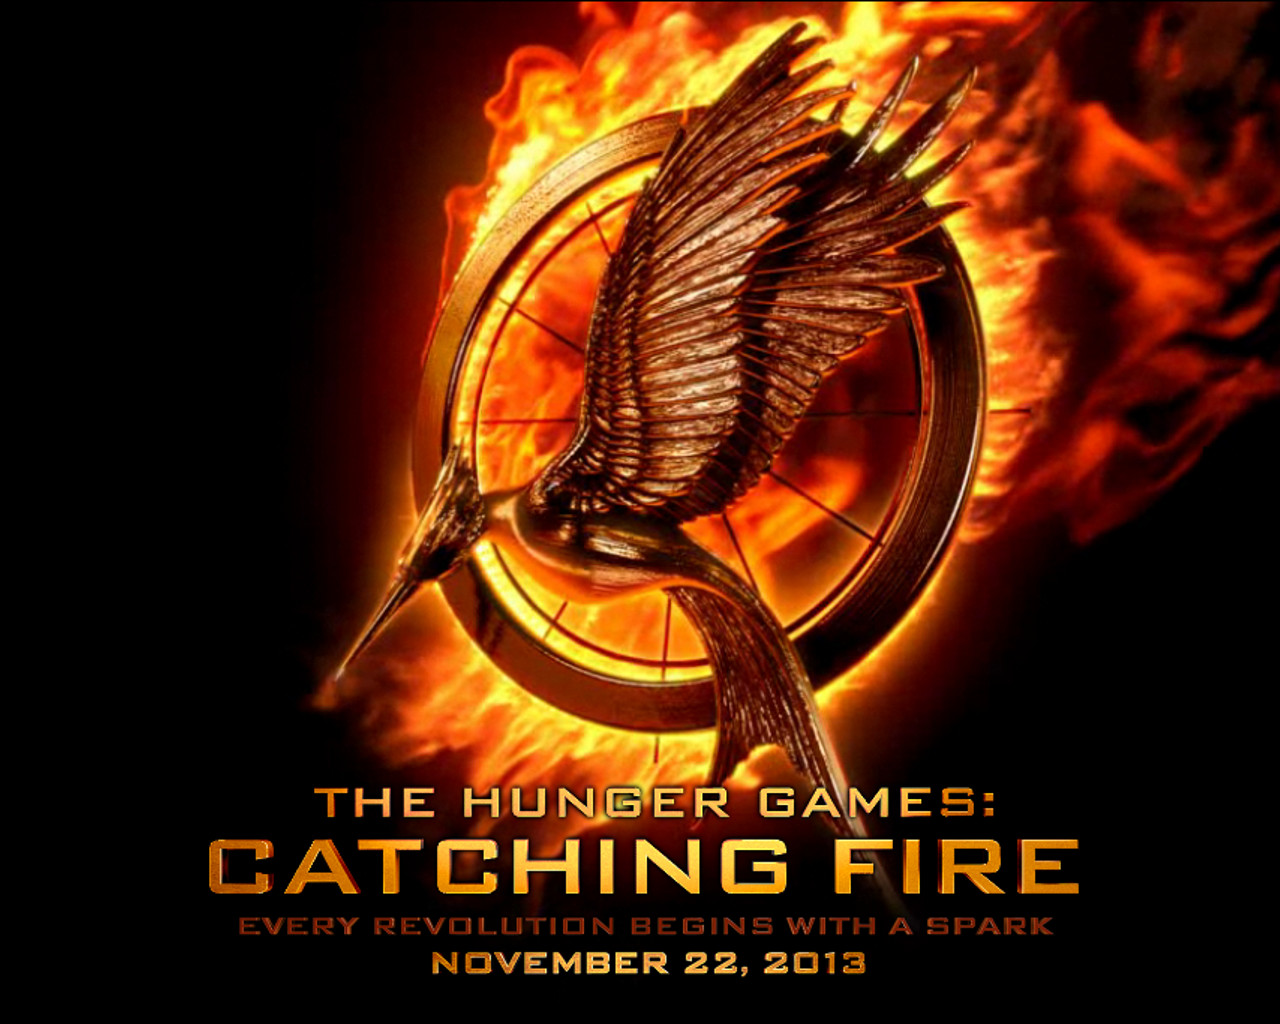 The Hunger Games Catching Fire Wallpaper 01 Star 98